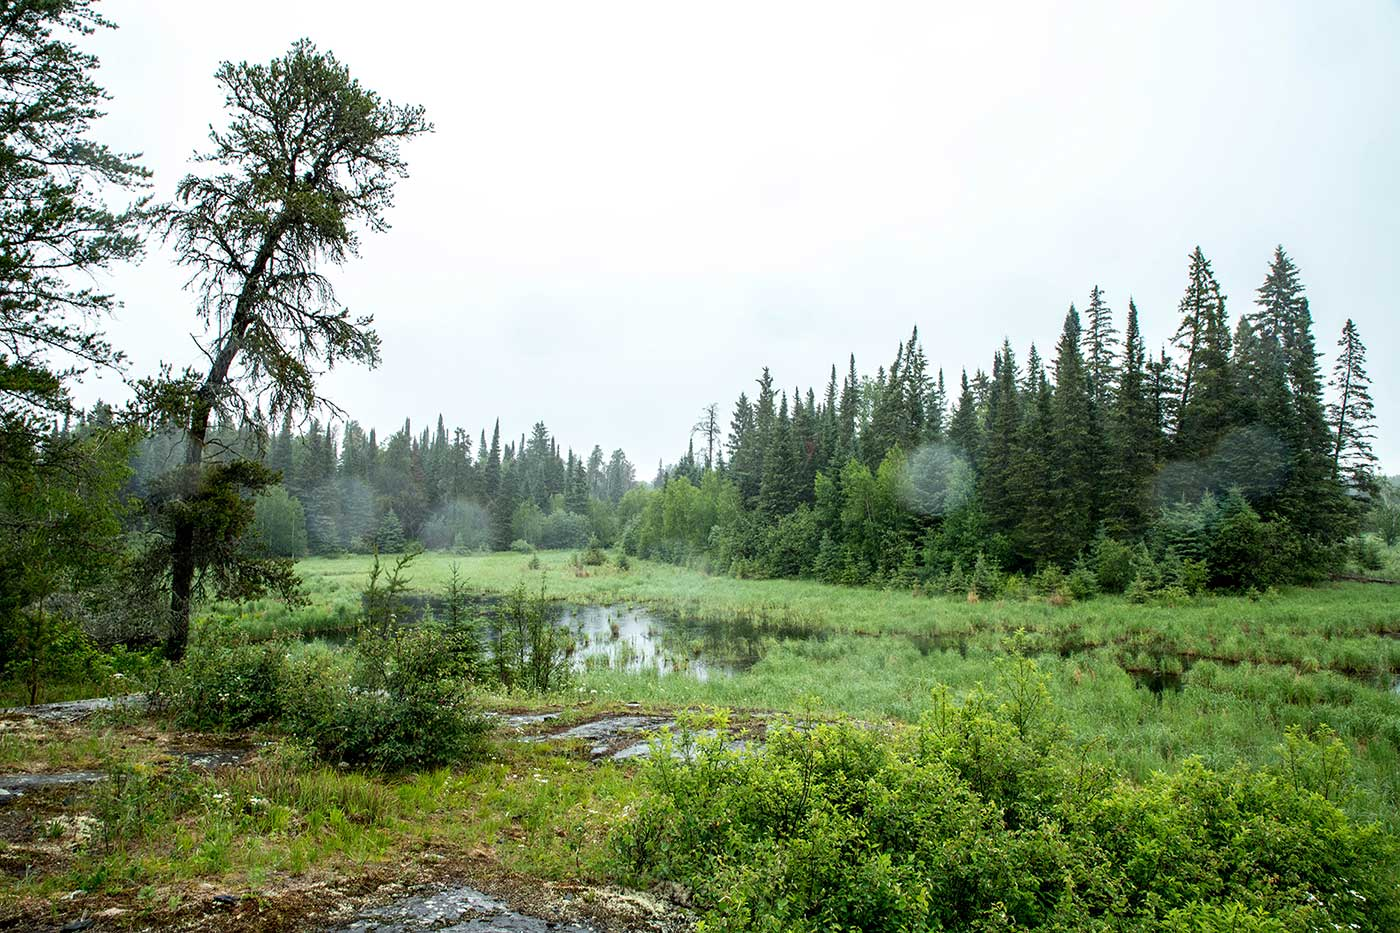 This clearing in Whiteshell Forest, a couple of miles north of Falcon Lake in Manitoba, is where Stefan Michalak reported having his 1967 encounter with a grounded extraterrestrial craft.